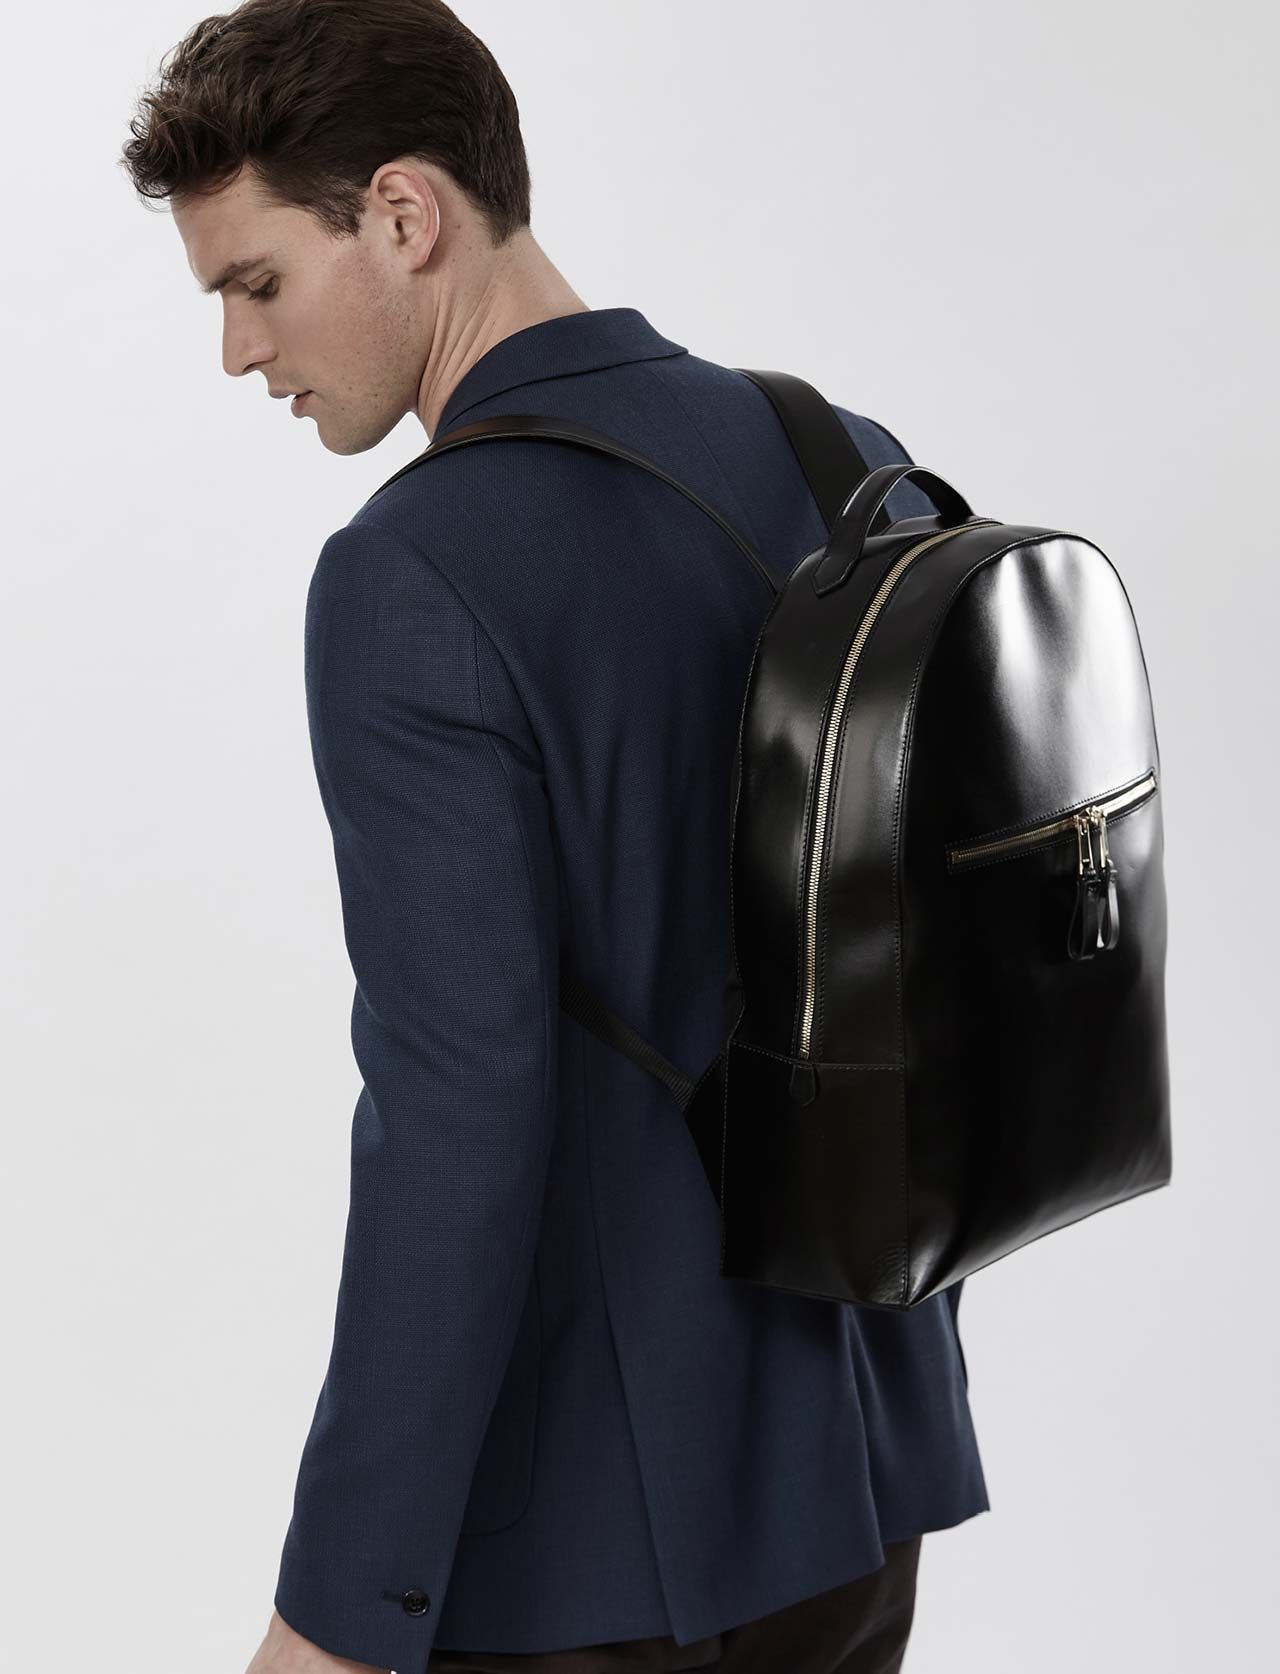 Carry It Off   SS17 Men's Bags - Reiss Editorial